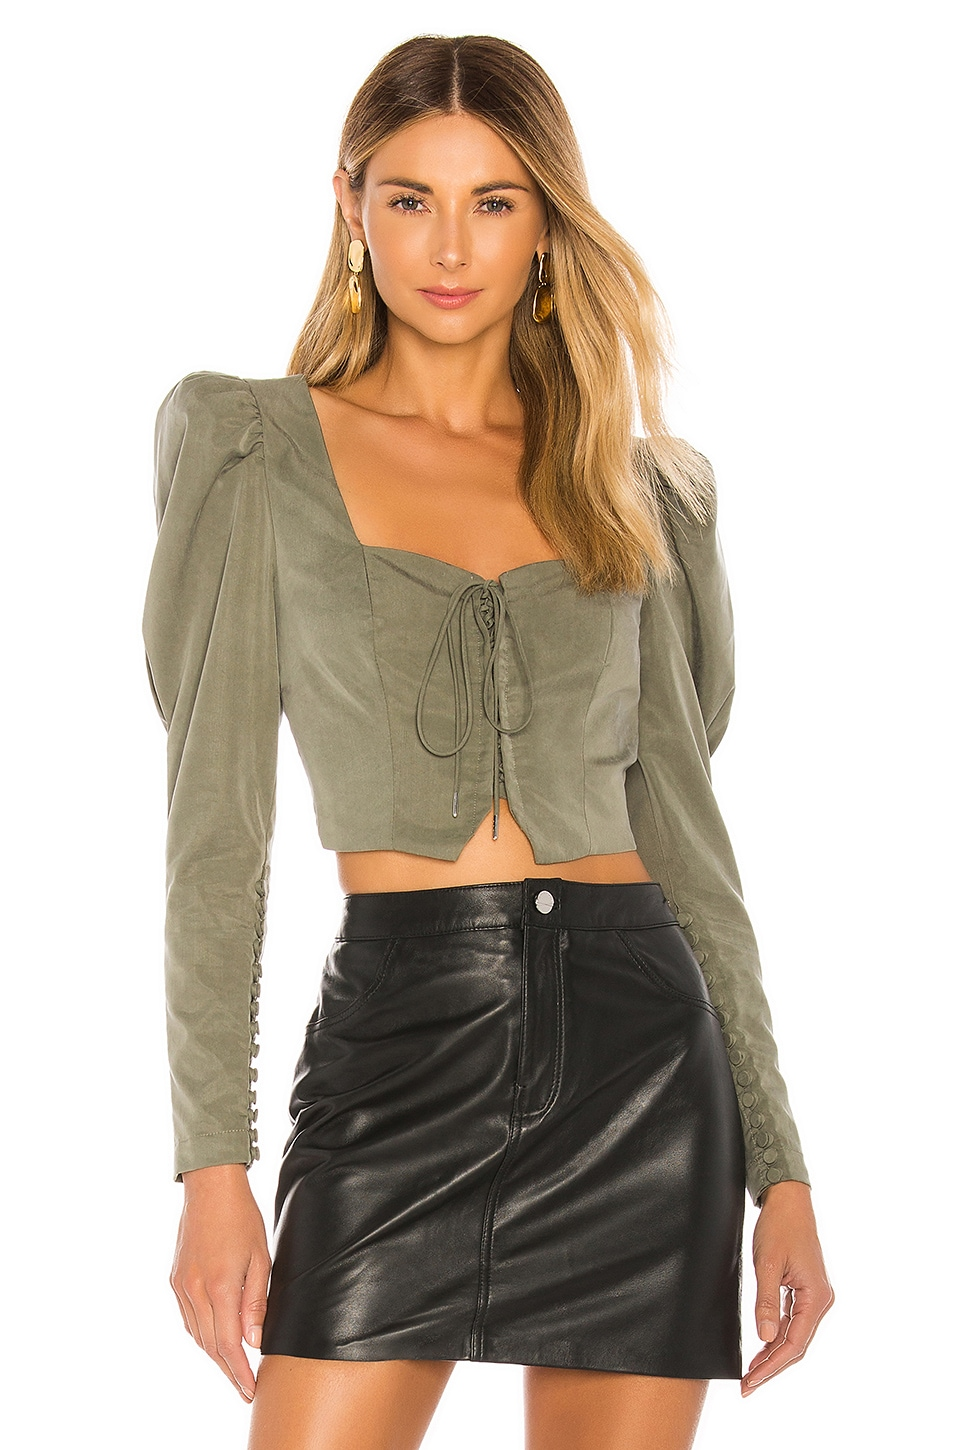 L'Academie The Duffy Blouse in Olive Green